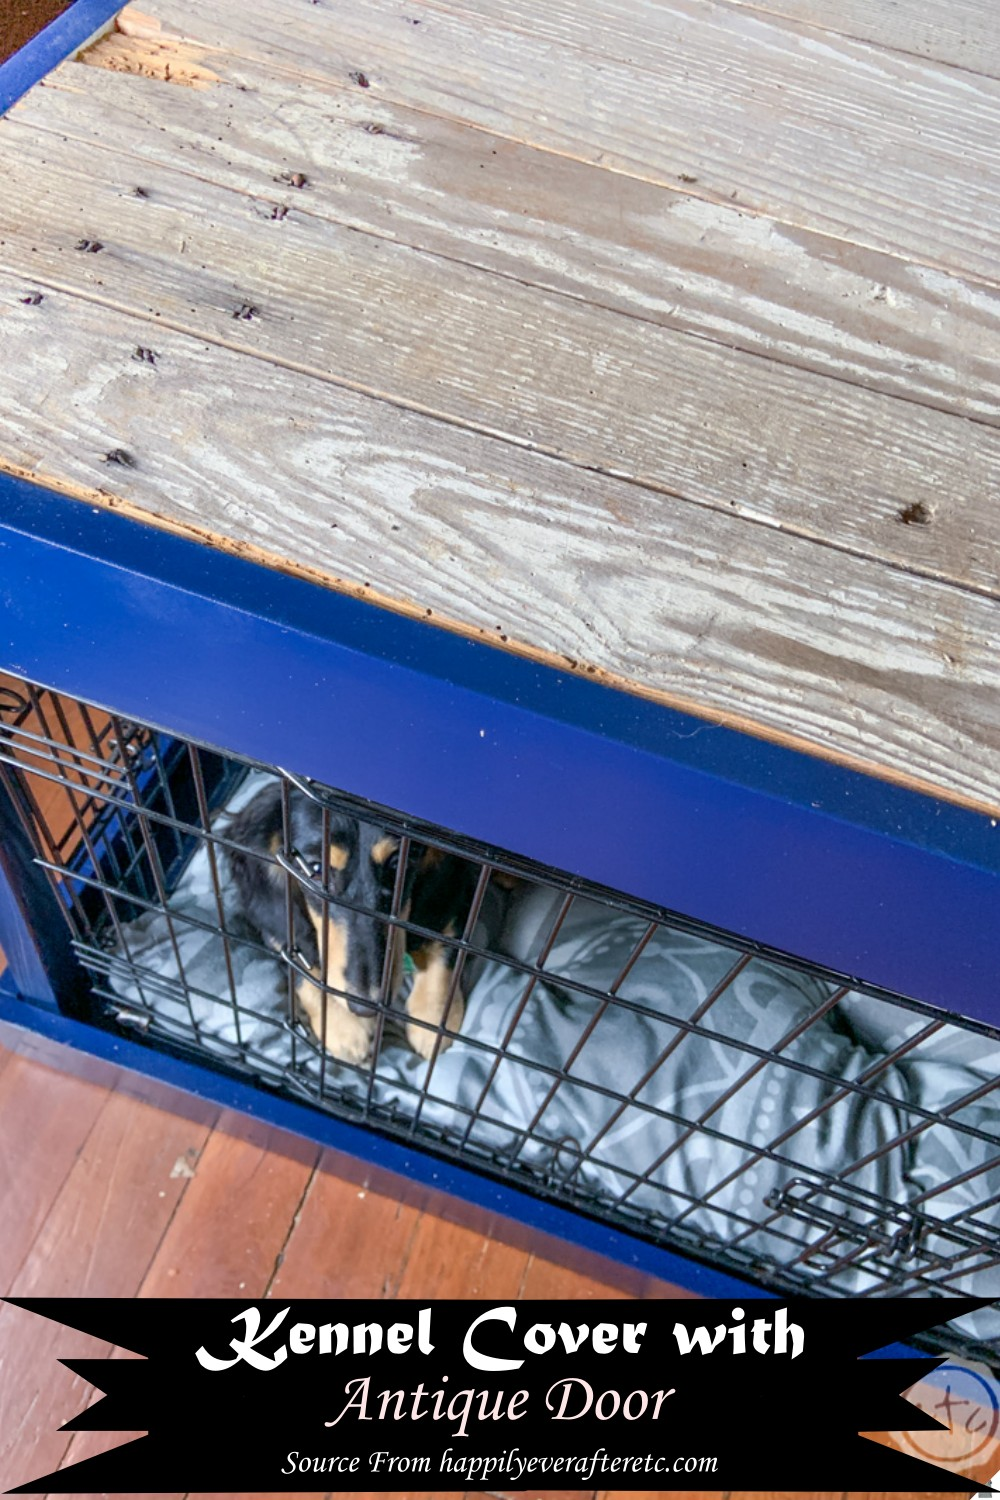 Kennel Cover with Antique Door